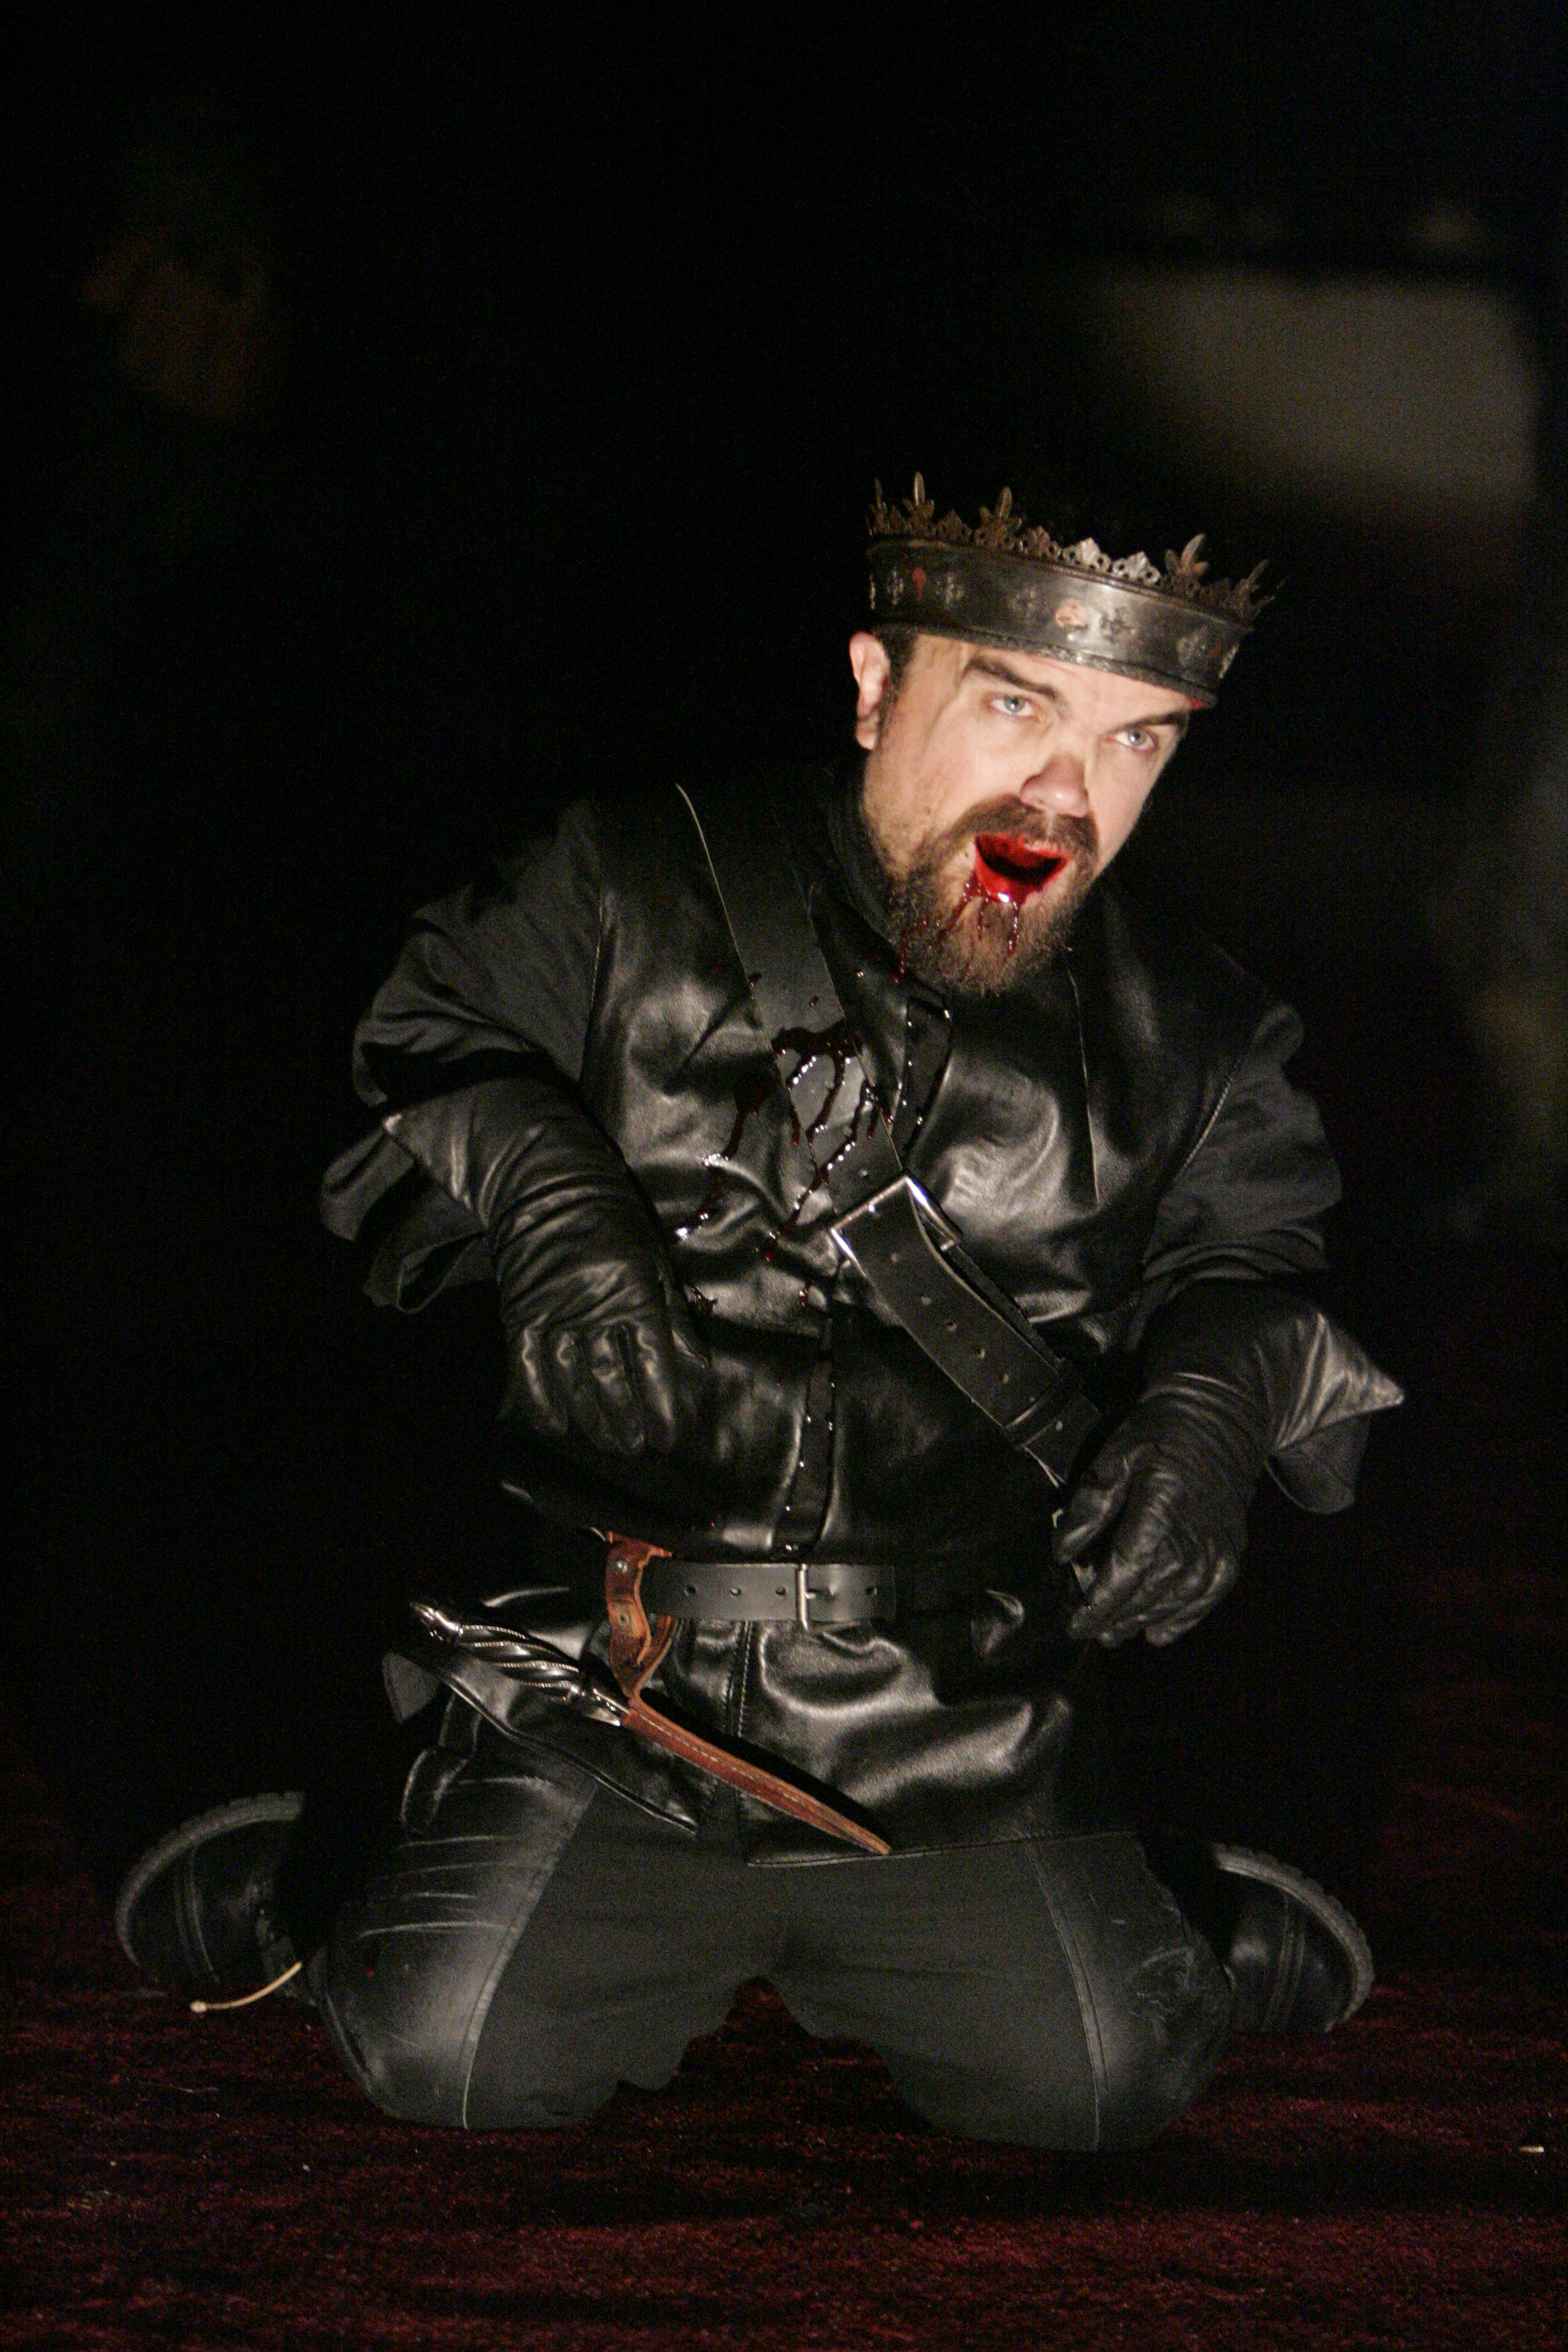 Richard III  by William Shakespeare, directed by Peter DuBois, starring Peter Dinklage, The Public Theater, New York, NY. 2004 © Michal Daniel.